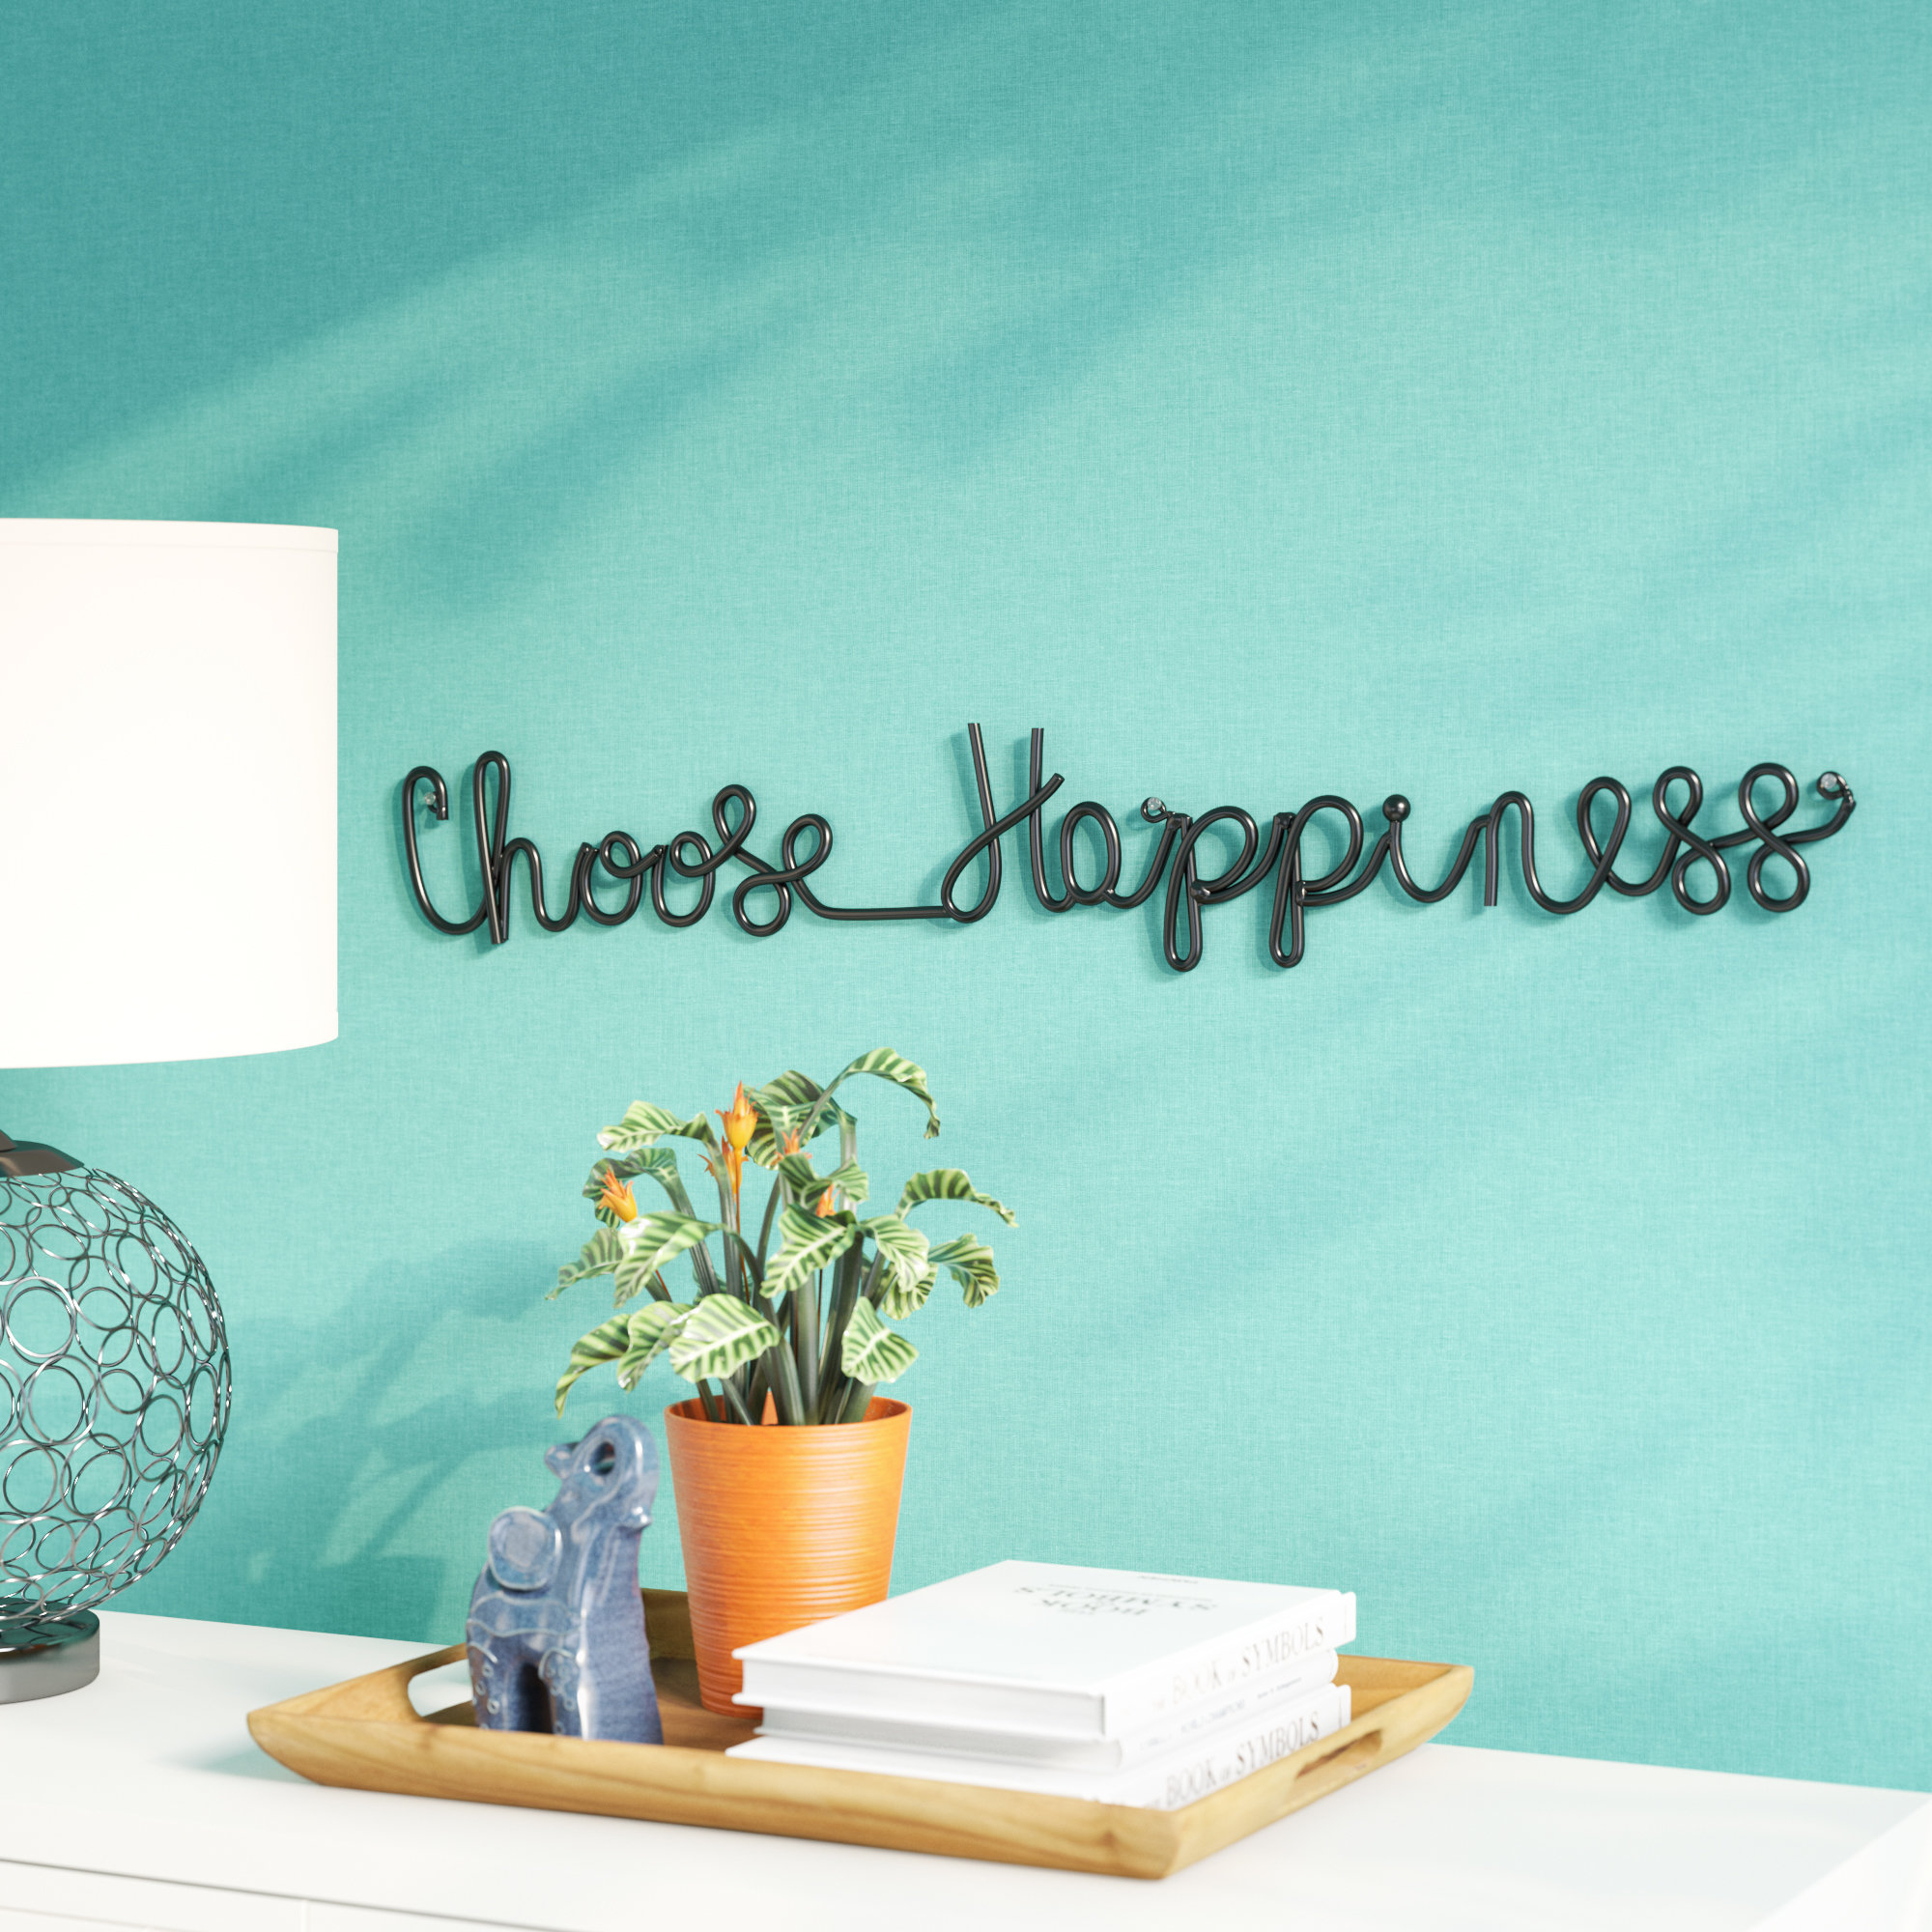 Popular Photo of Choose Happiness 3D Cursive Metal Wall Decor